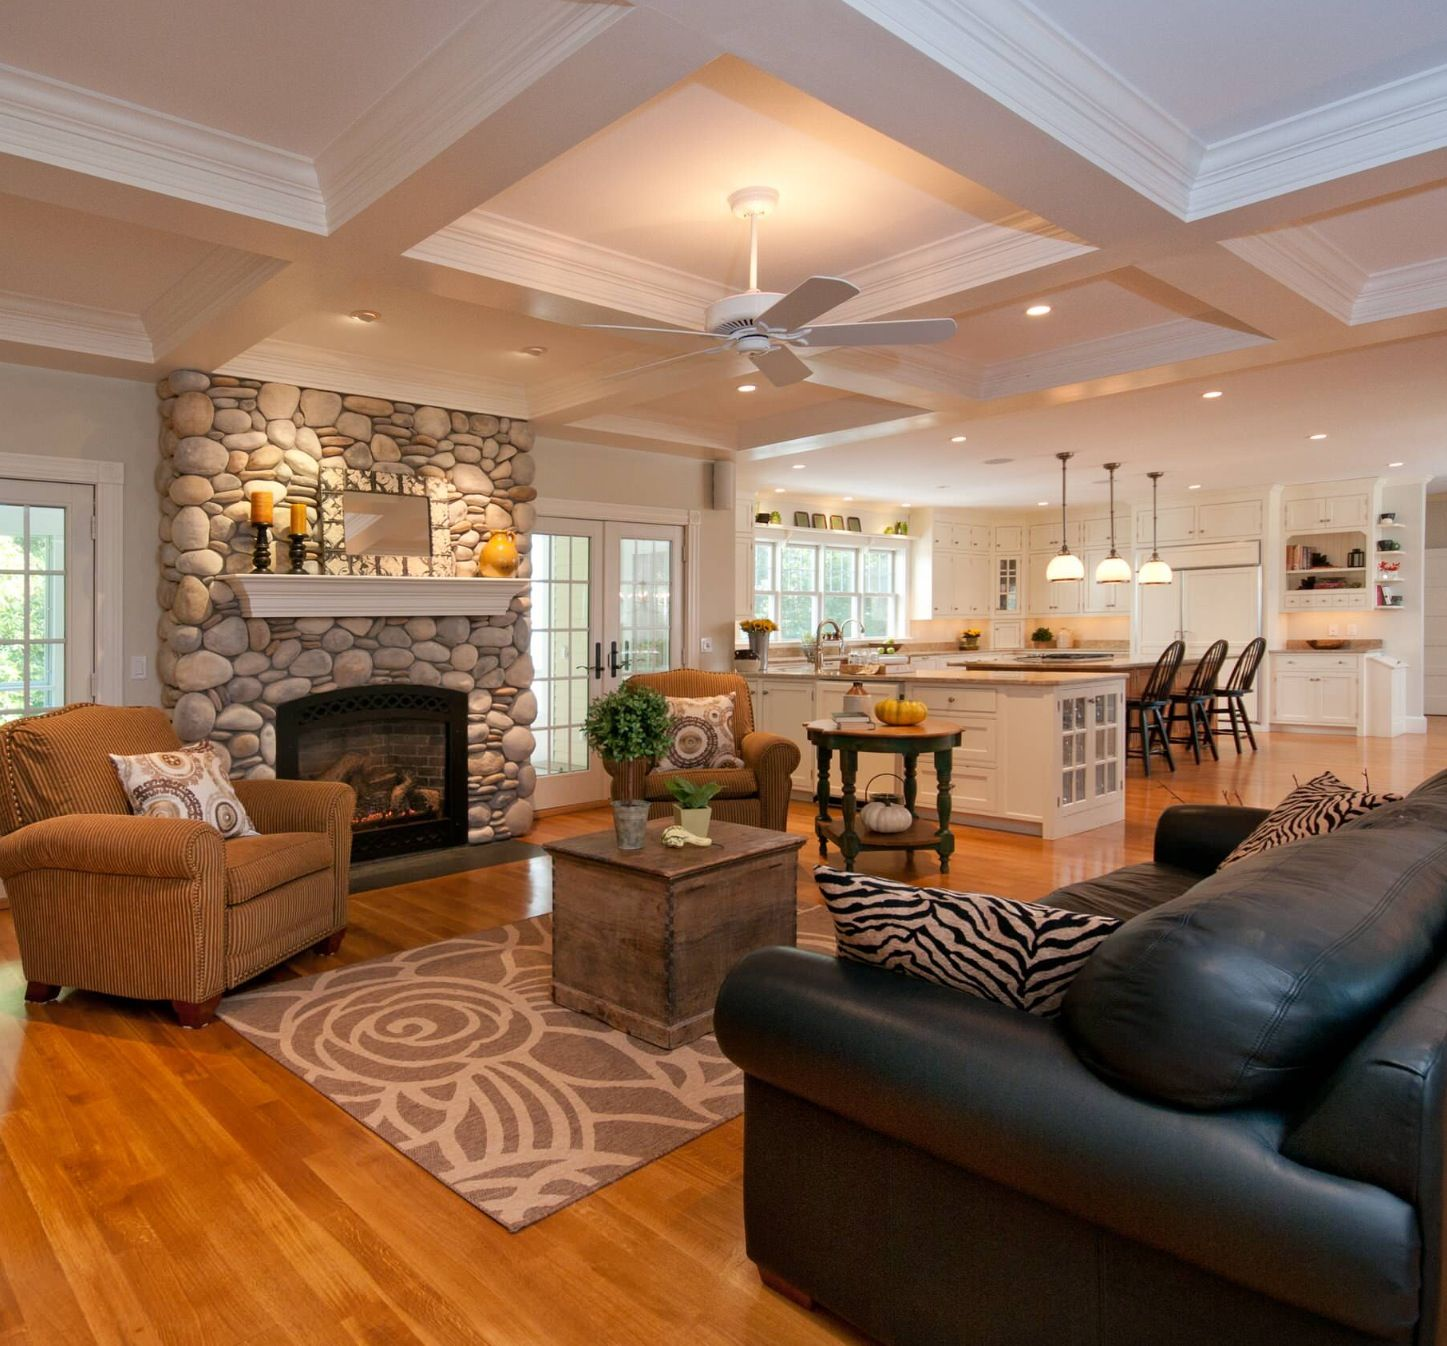 34 Beautiful Stone Fireplaces That Rock | Open concept, Ceilings and ...